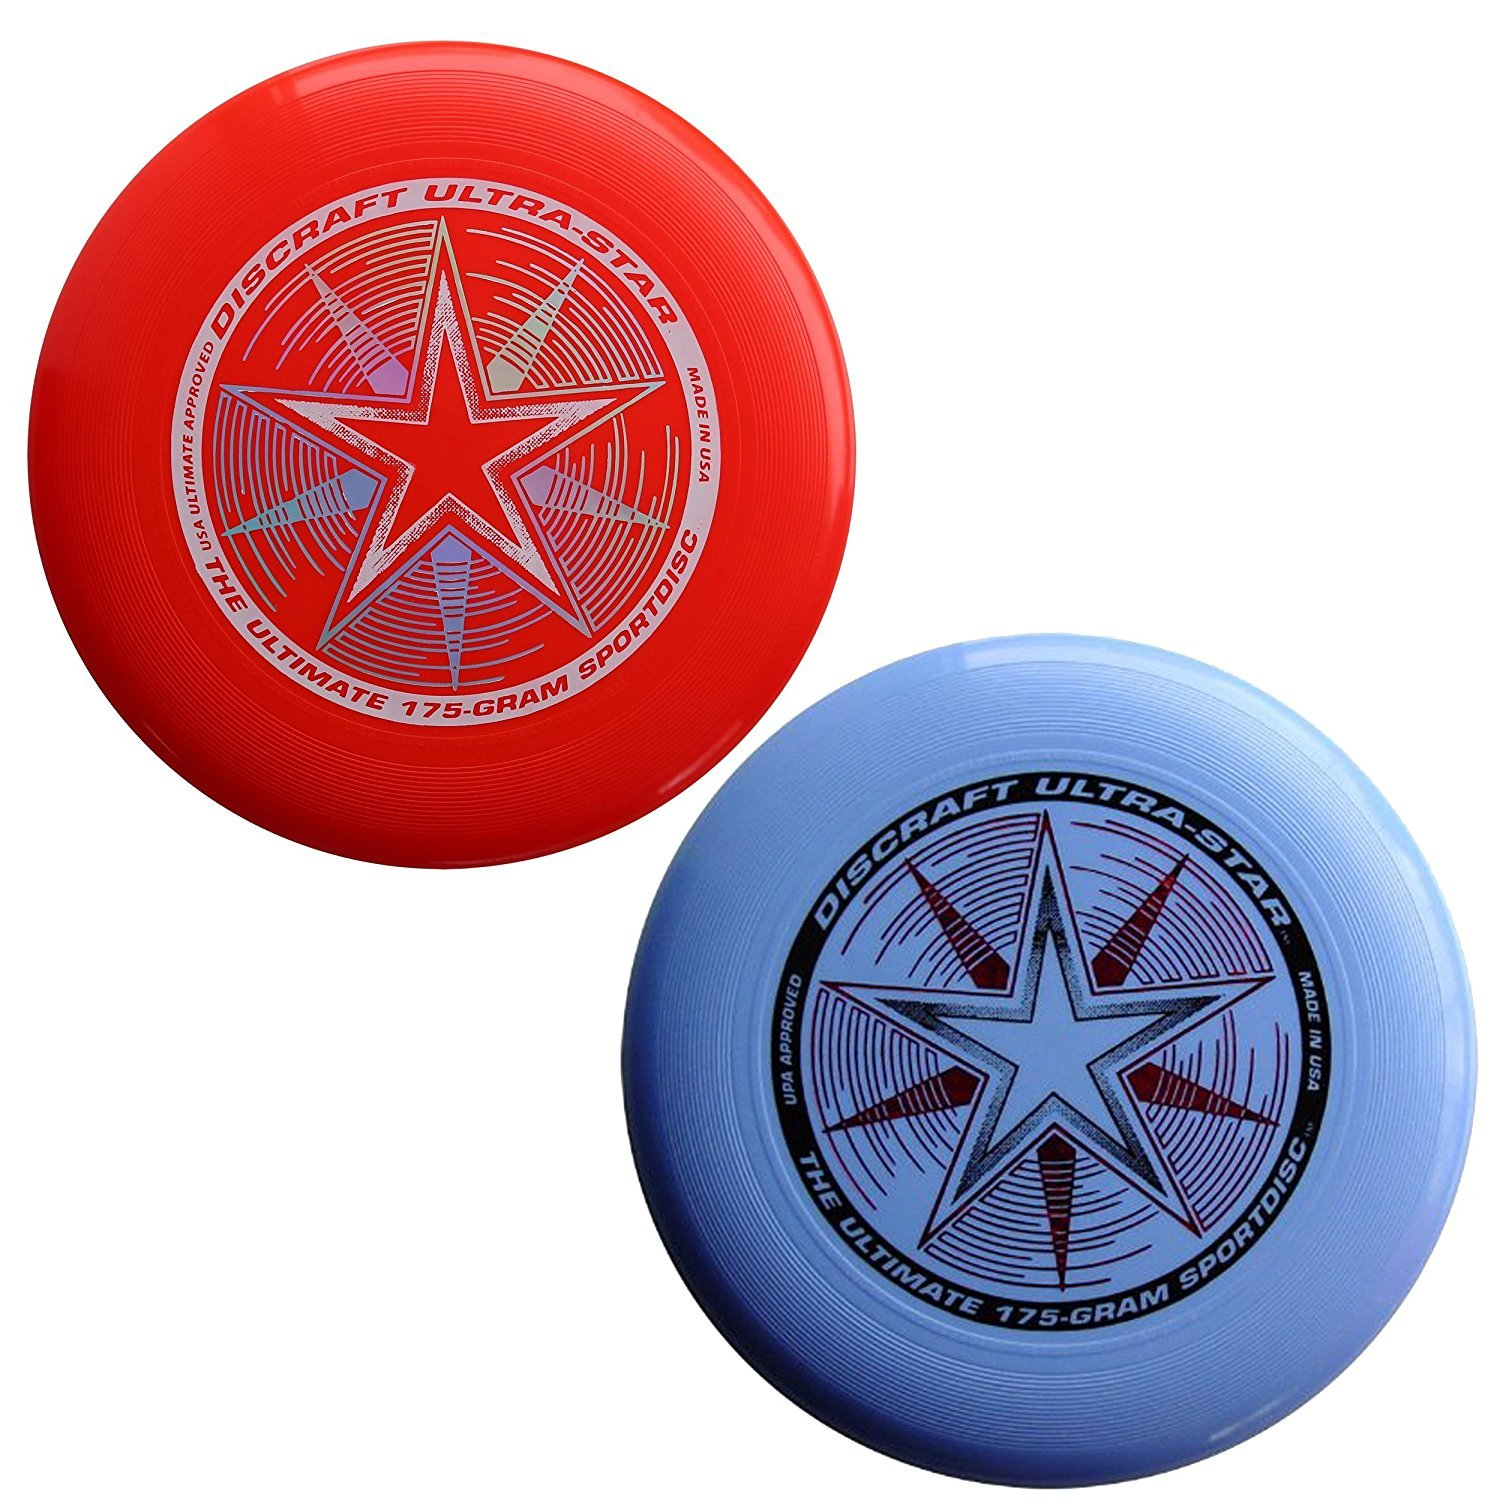 Discraft 175 gram Ultra Star Sport Disc. (2 pack) by Discraft